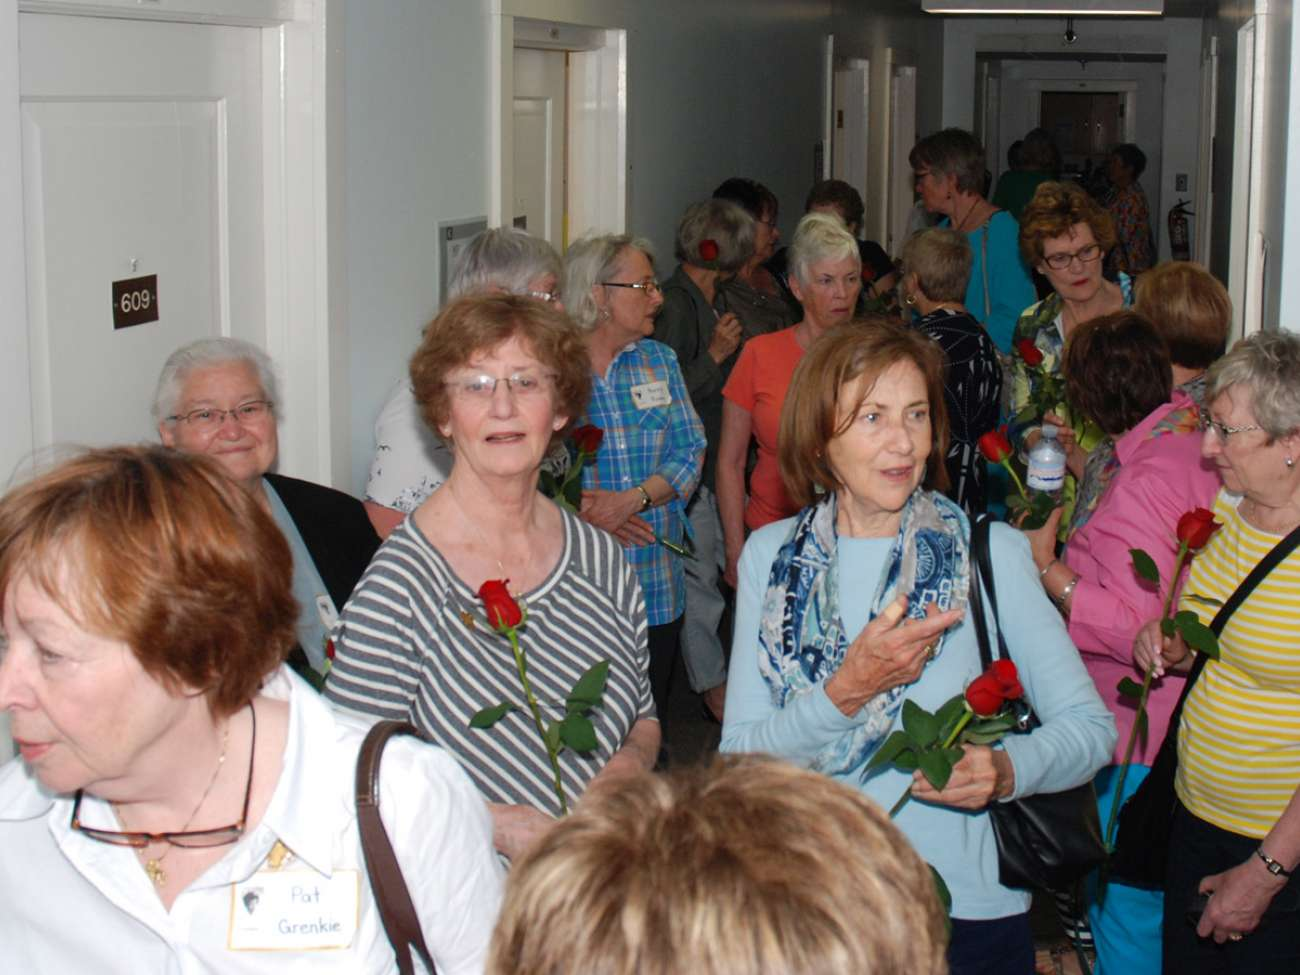 Tour participants in the Kaufman building, their former residence as nursing students